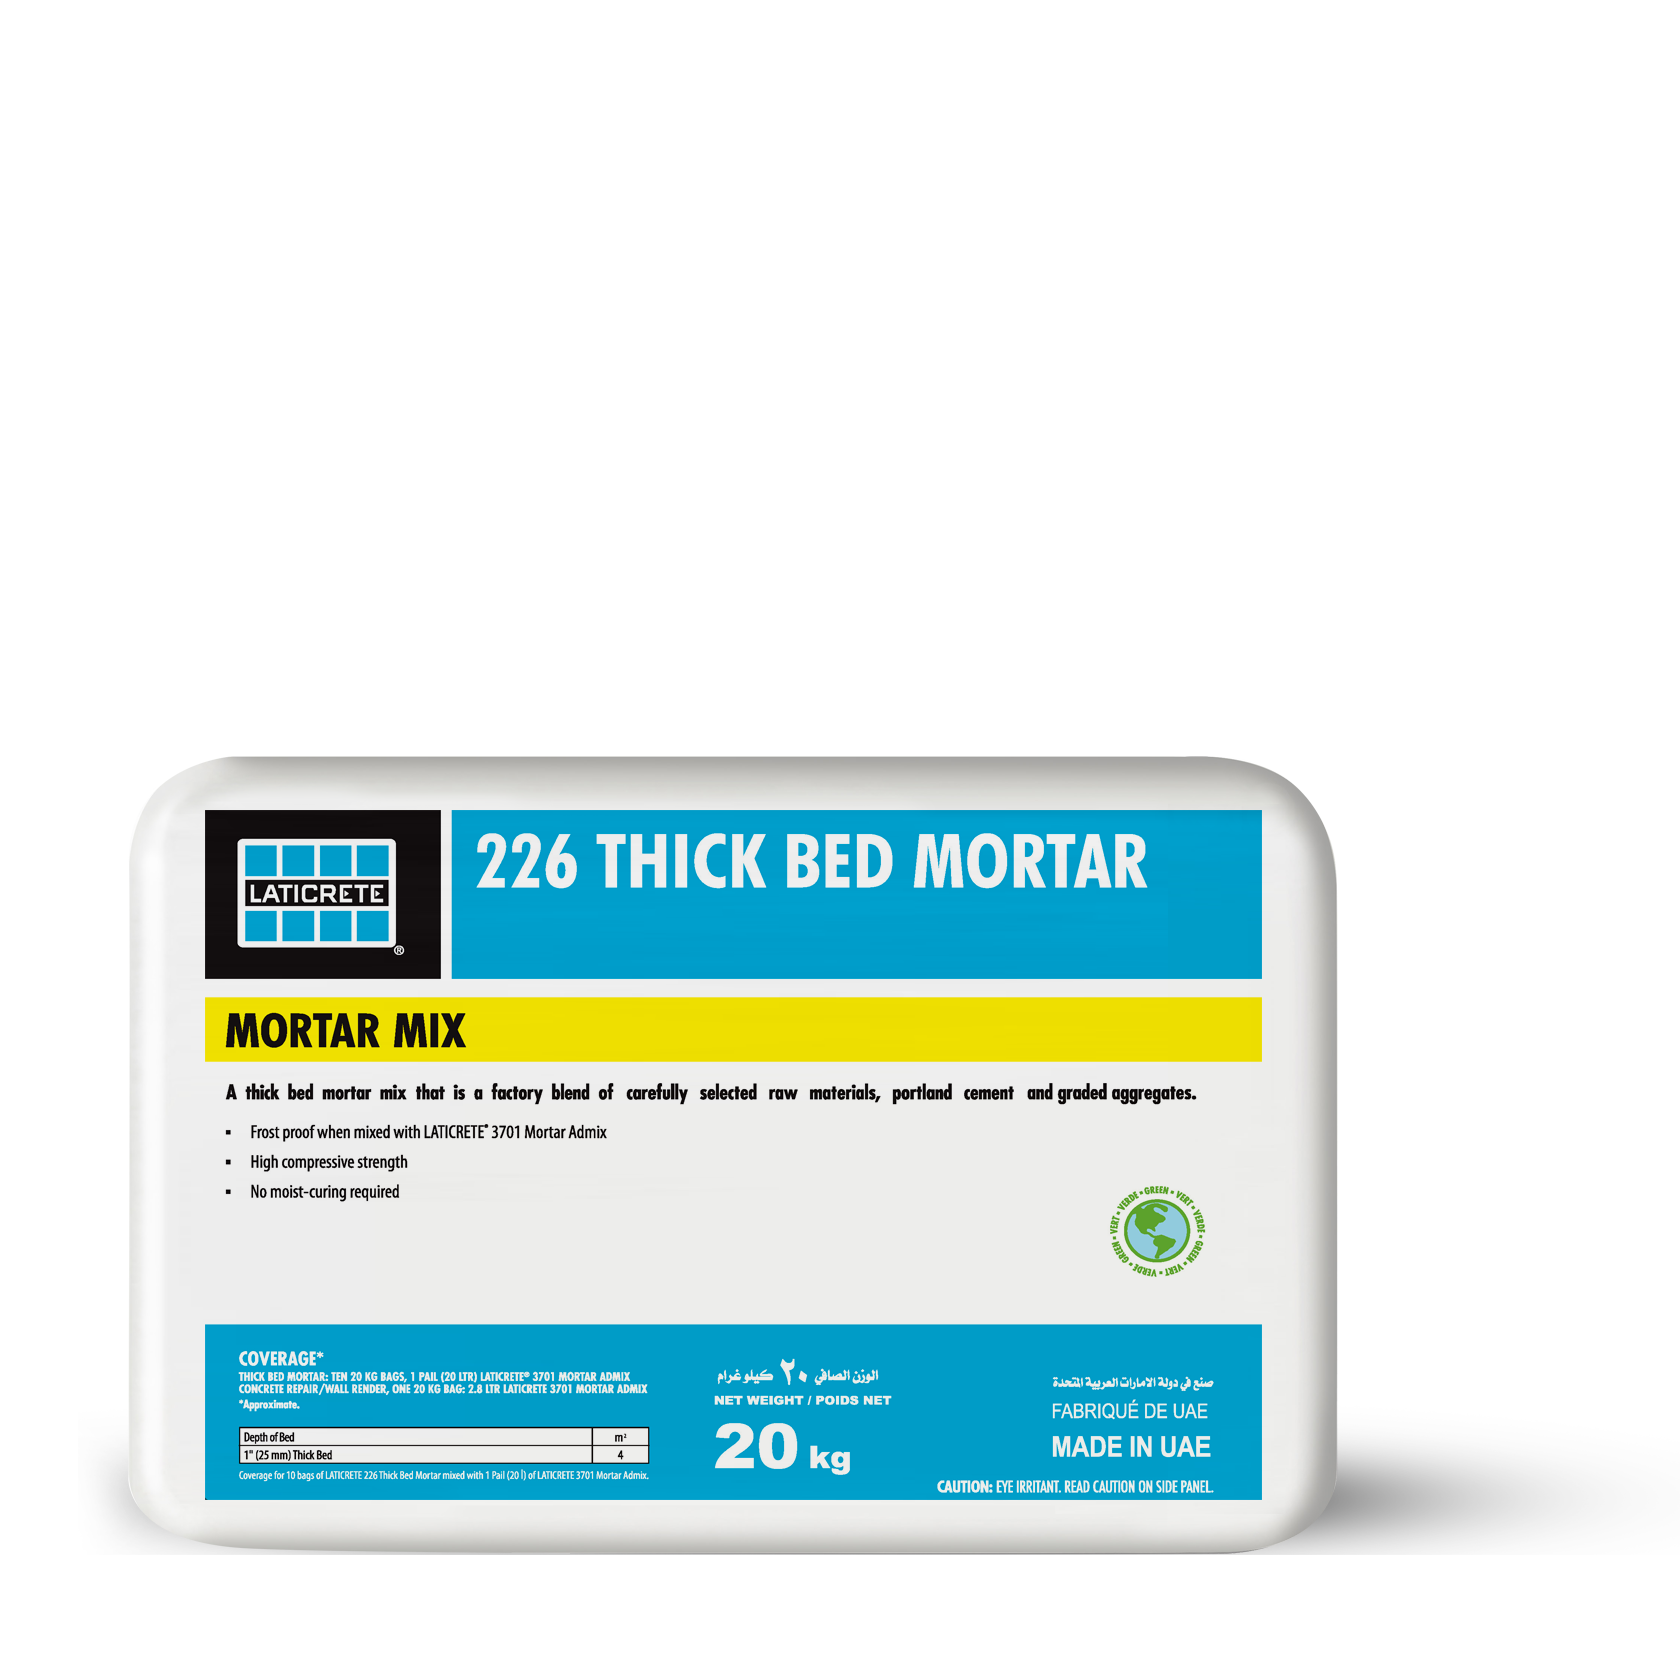 226 Thick Bed Mortar